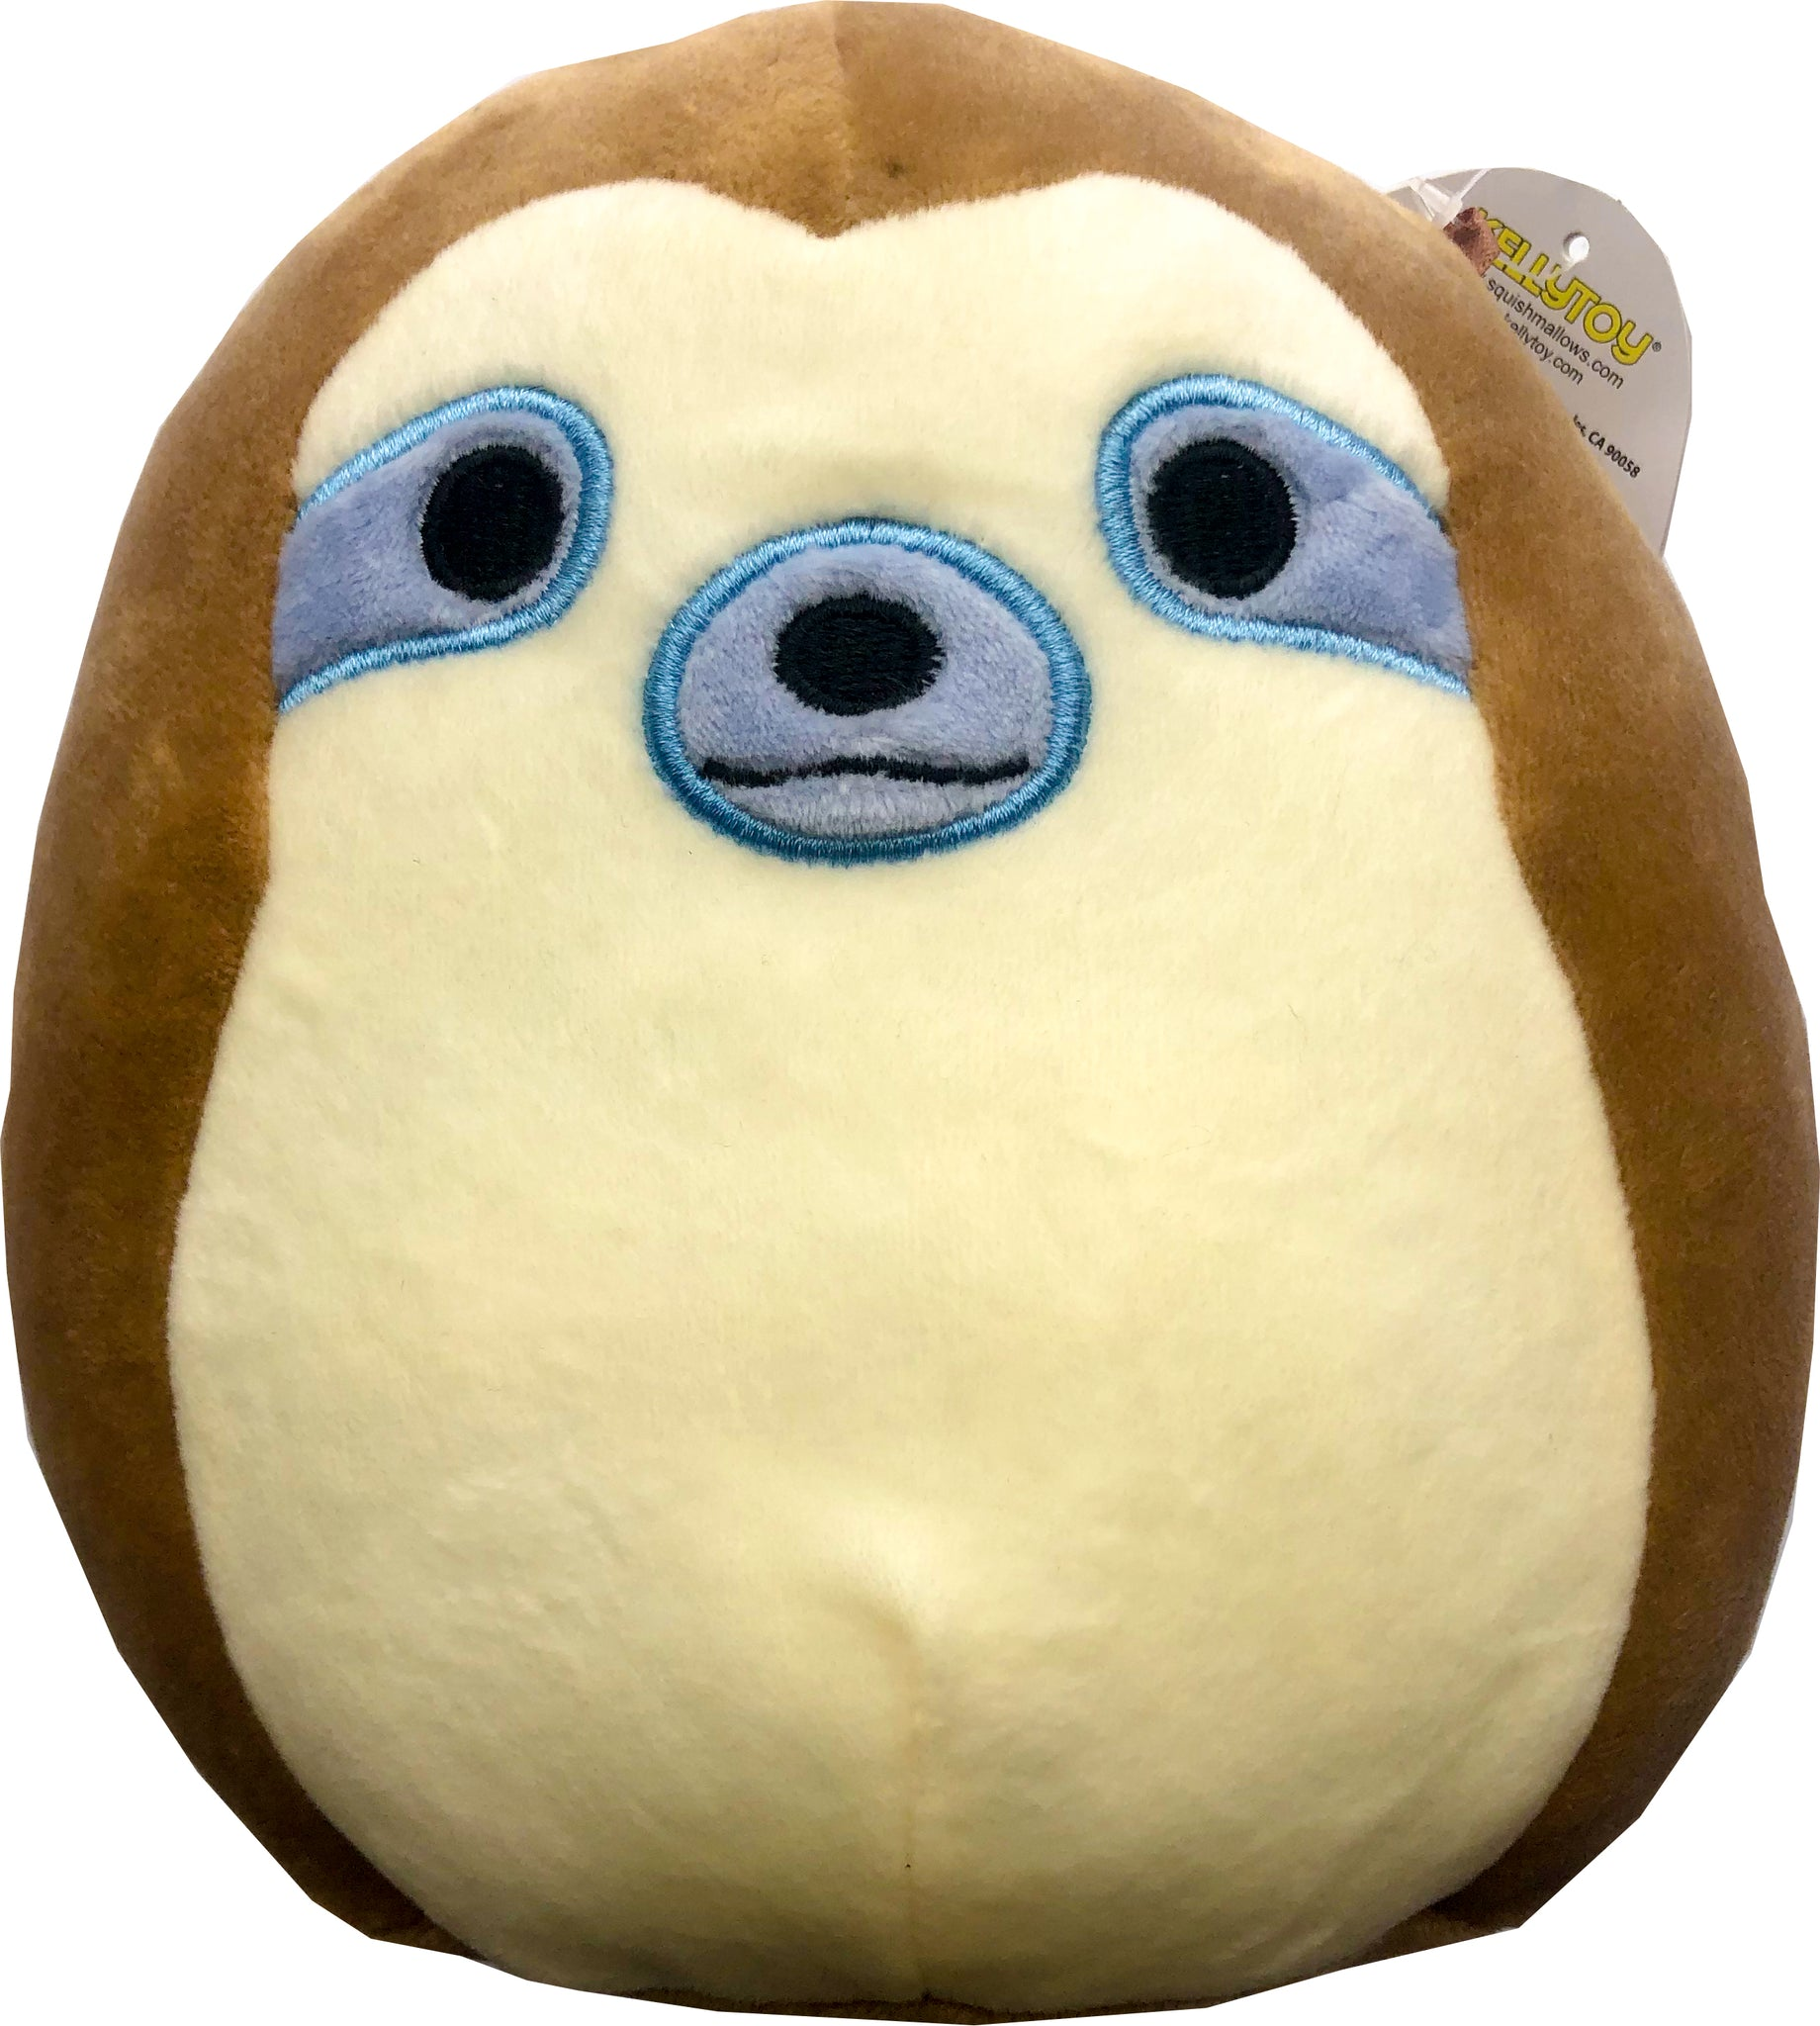 "Squishmallows - 7"" Brown Sloth"